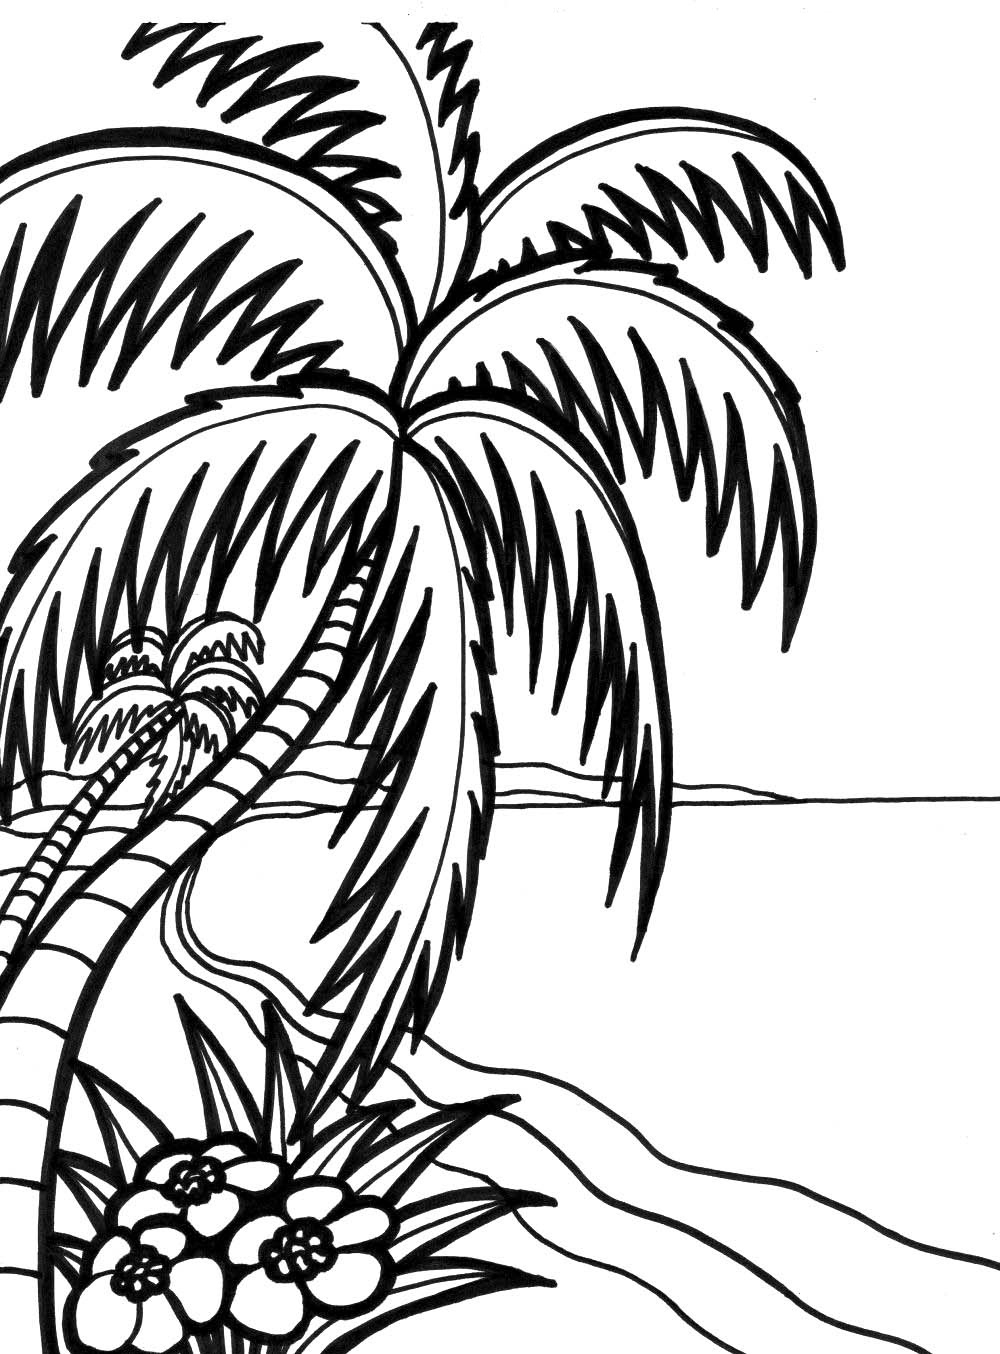 willow tree coloring page willow tree drawing at getdrawings free download page willow coloring tree